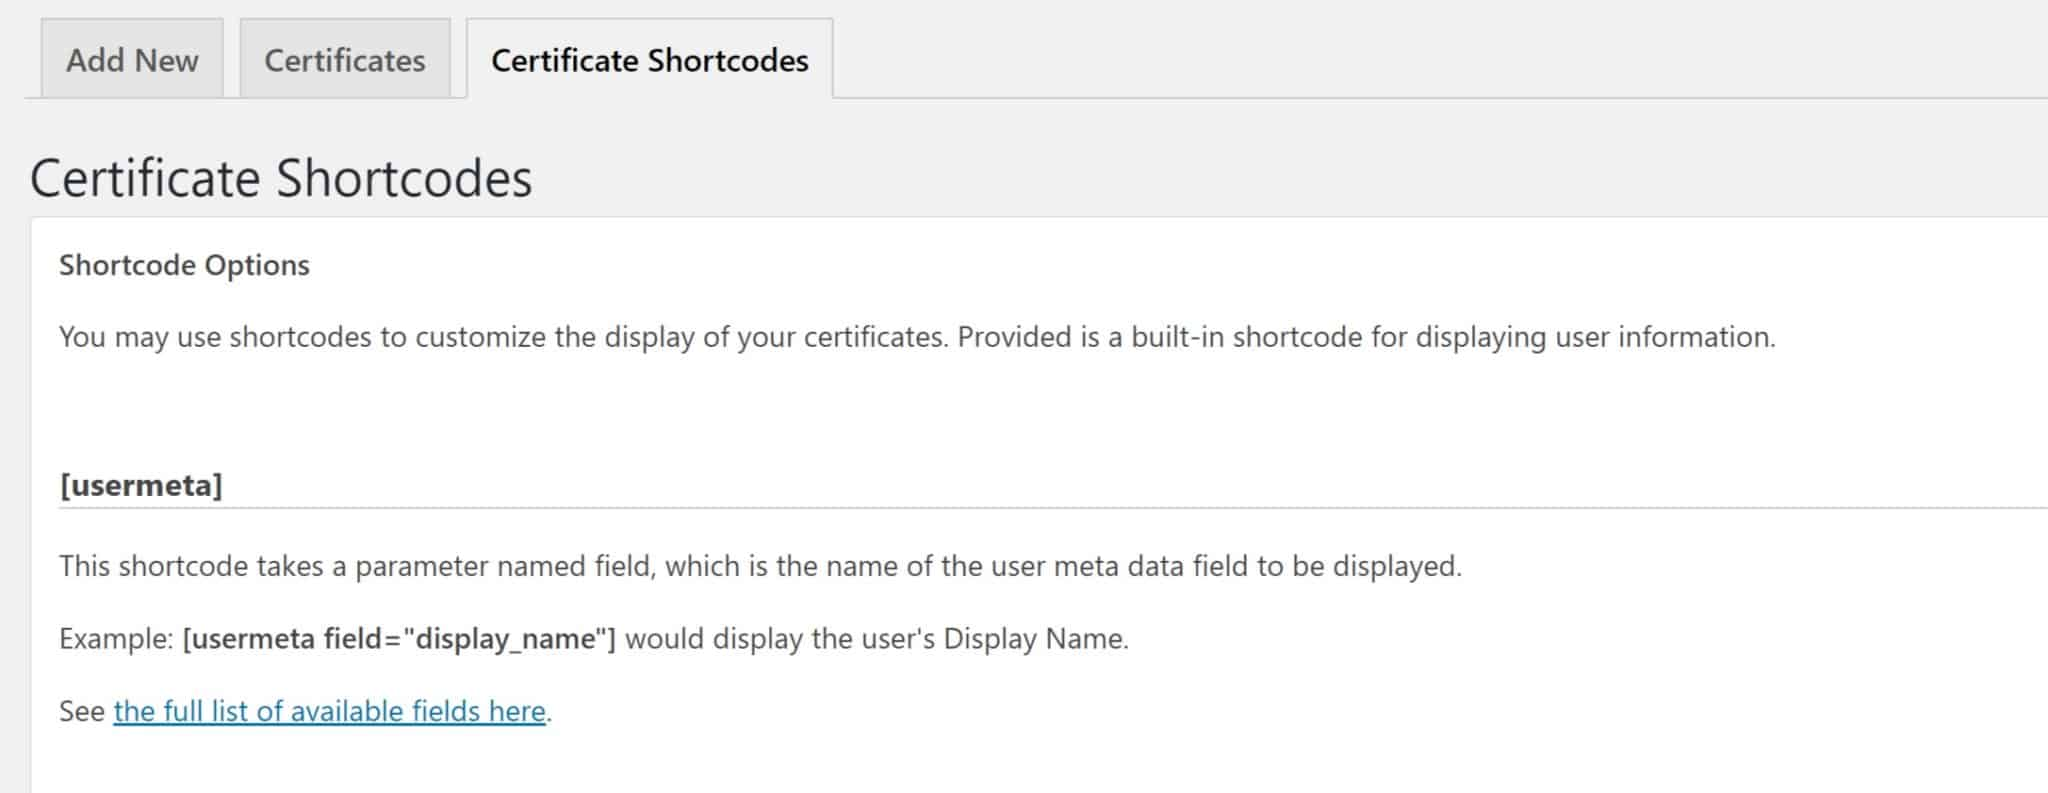 Certificate Shortcodes Tab